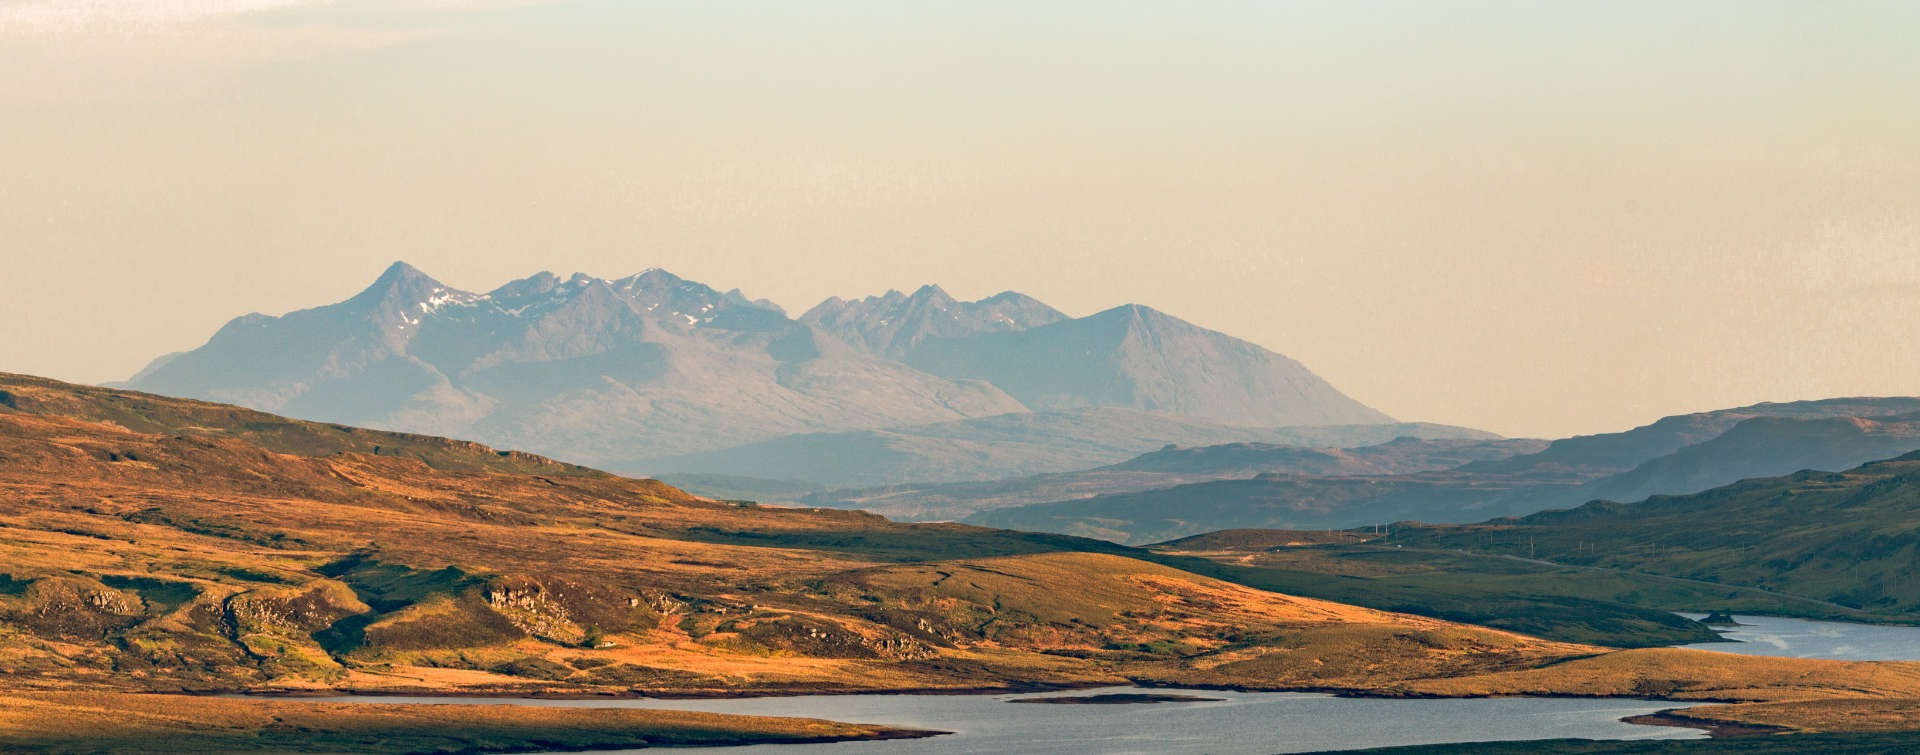 Cuillin Ridge, Isle of Skye, scotland seen from distance with clear red skye and river in foreground